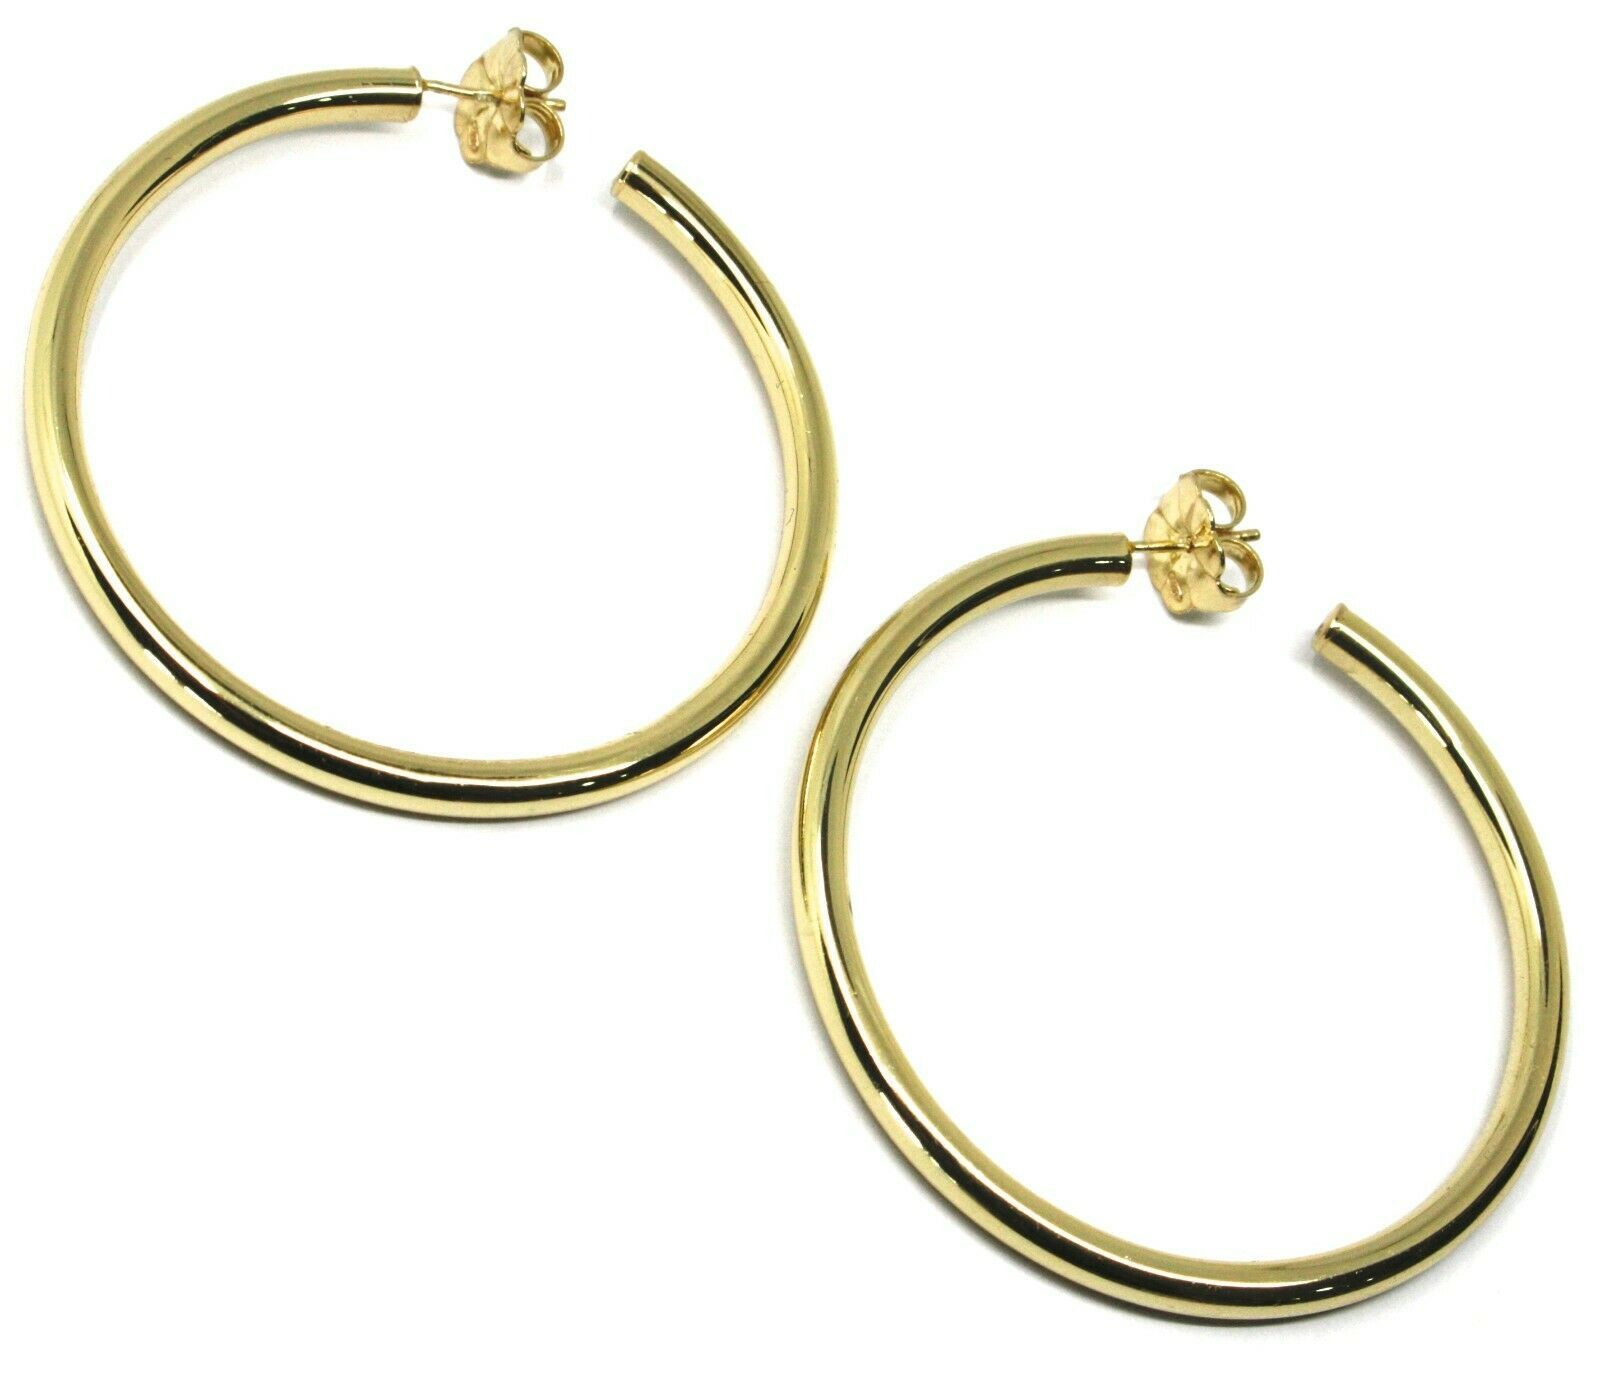 925 STERLING SILVER CIRCLE HOOPS BIG EARRINGS, 6 cm x 4 mm, YELLOW, SMOOTH